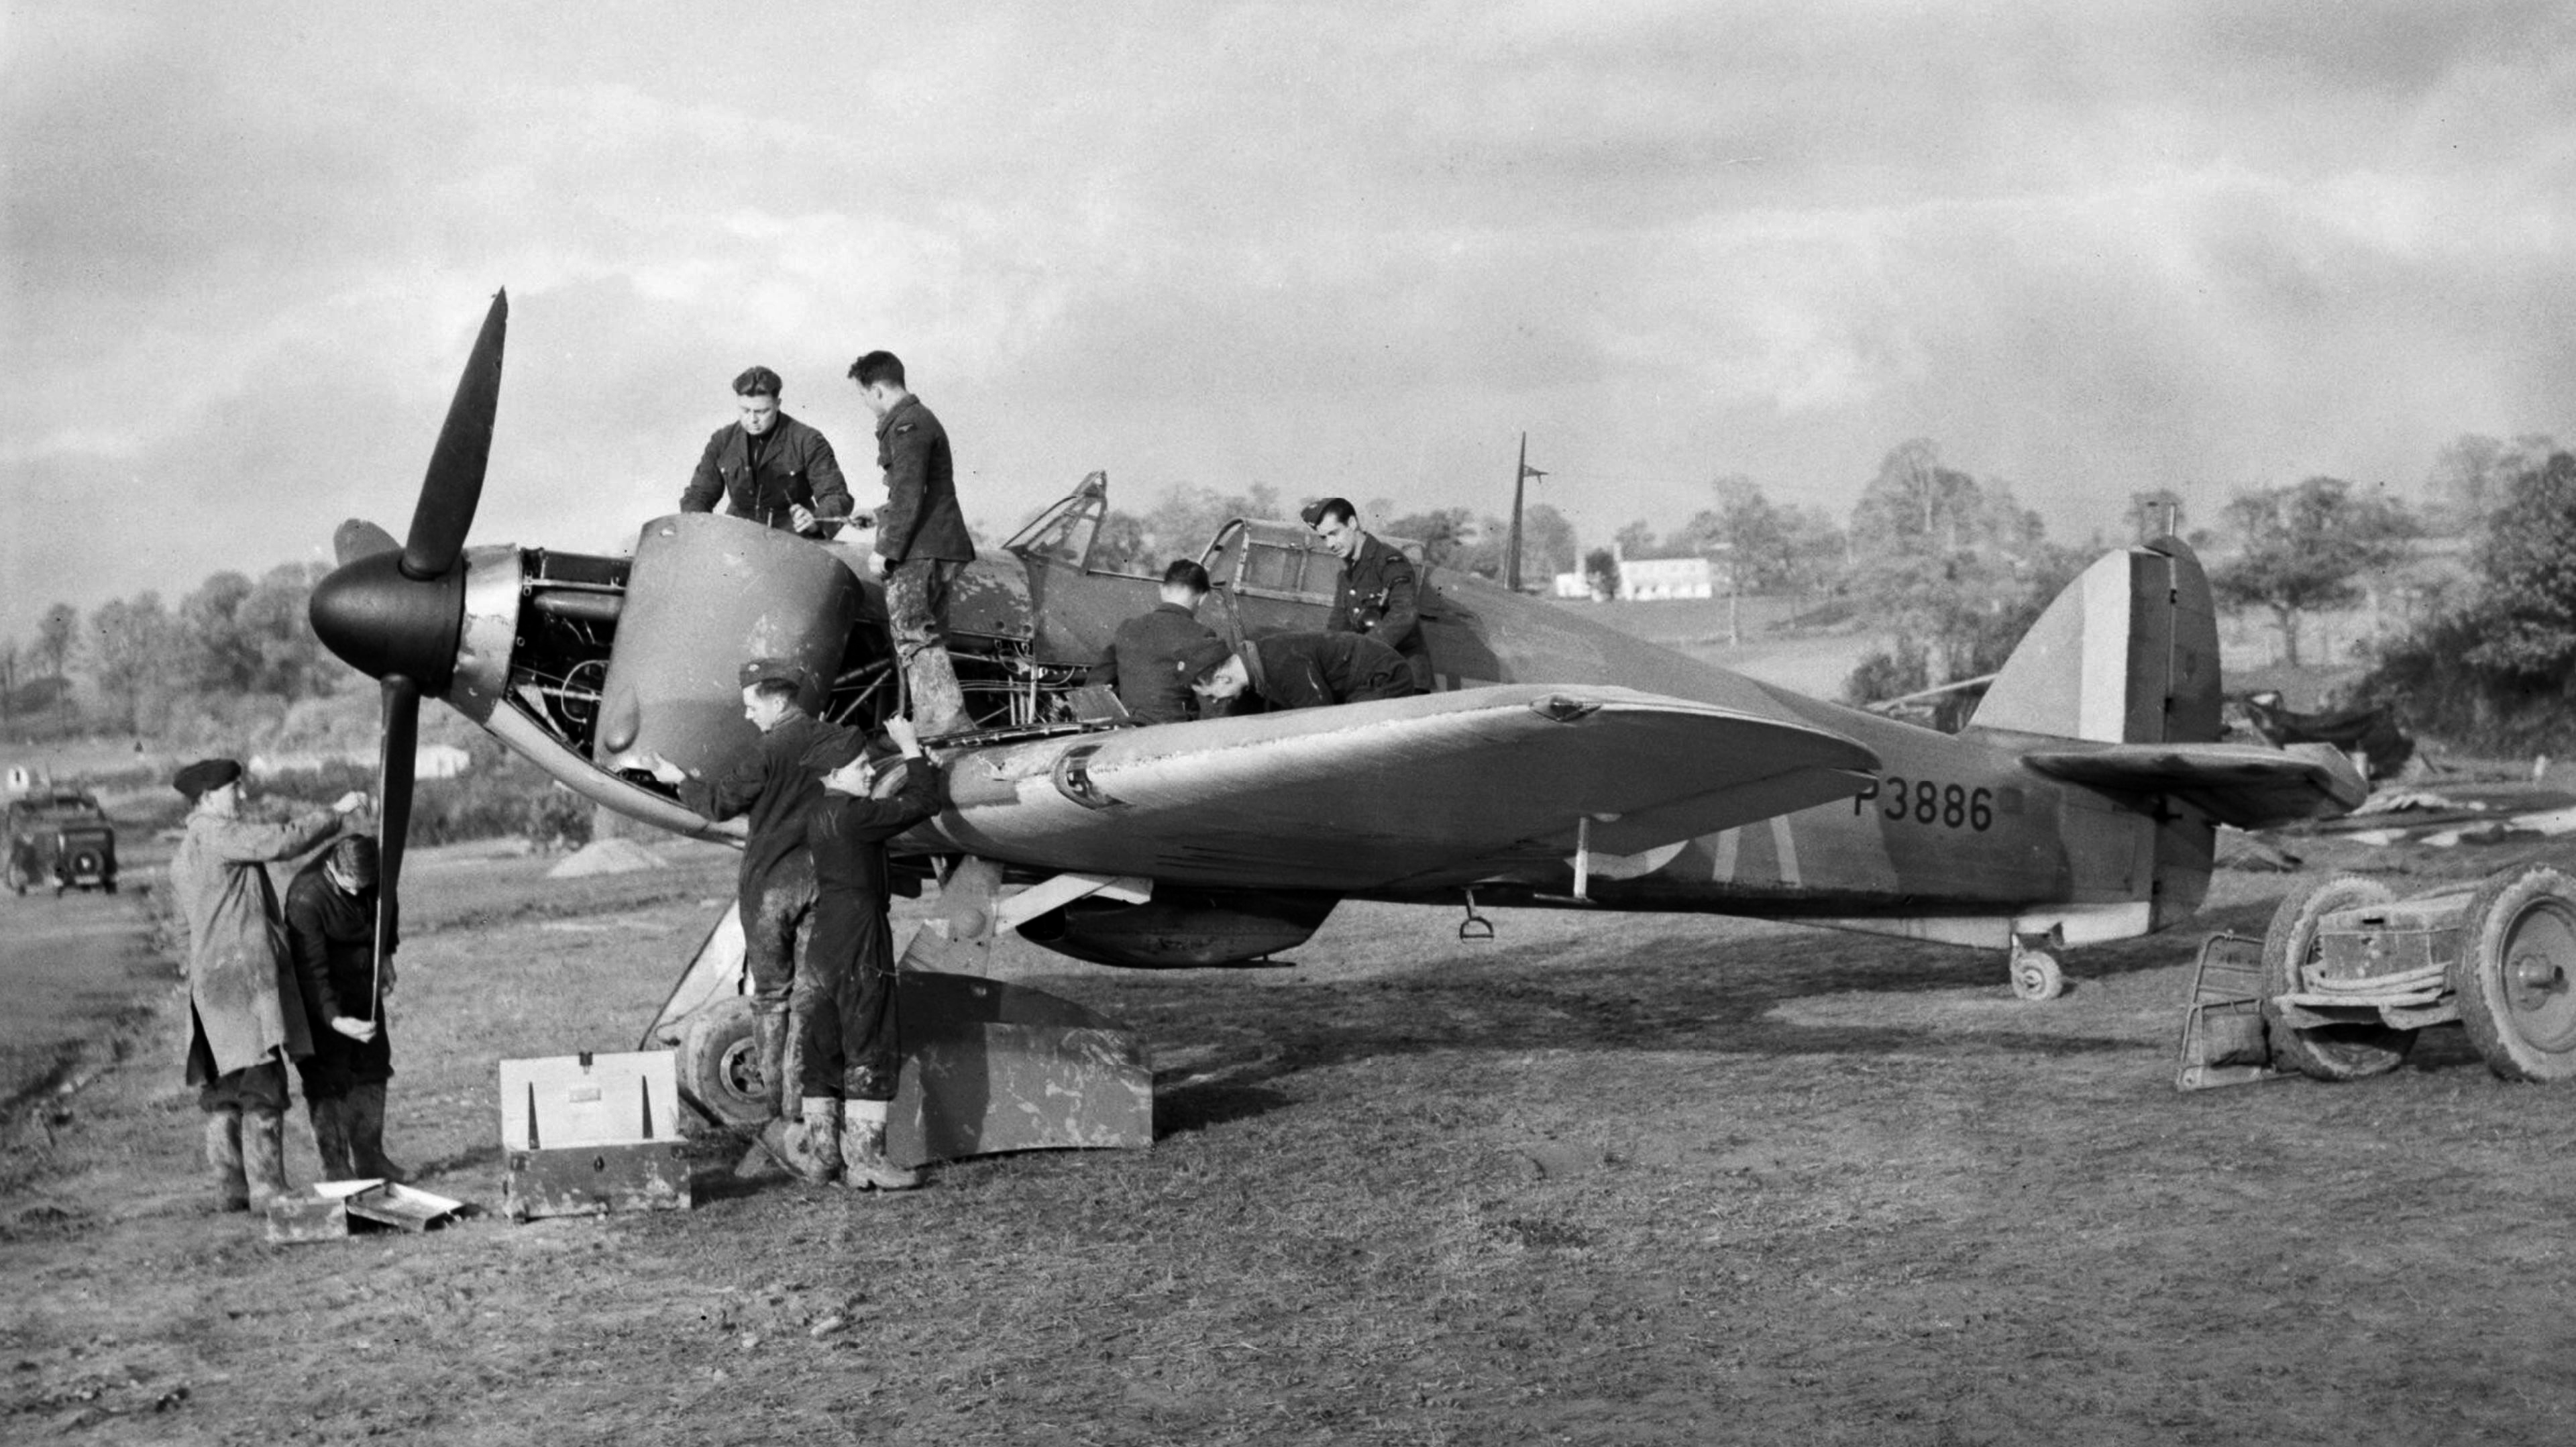 Hurricane I RAF 601Sqn UFK P3886 previously flown by HJ Riddle being repaired at RAF Exeter 1940 IWM C1638a